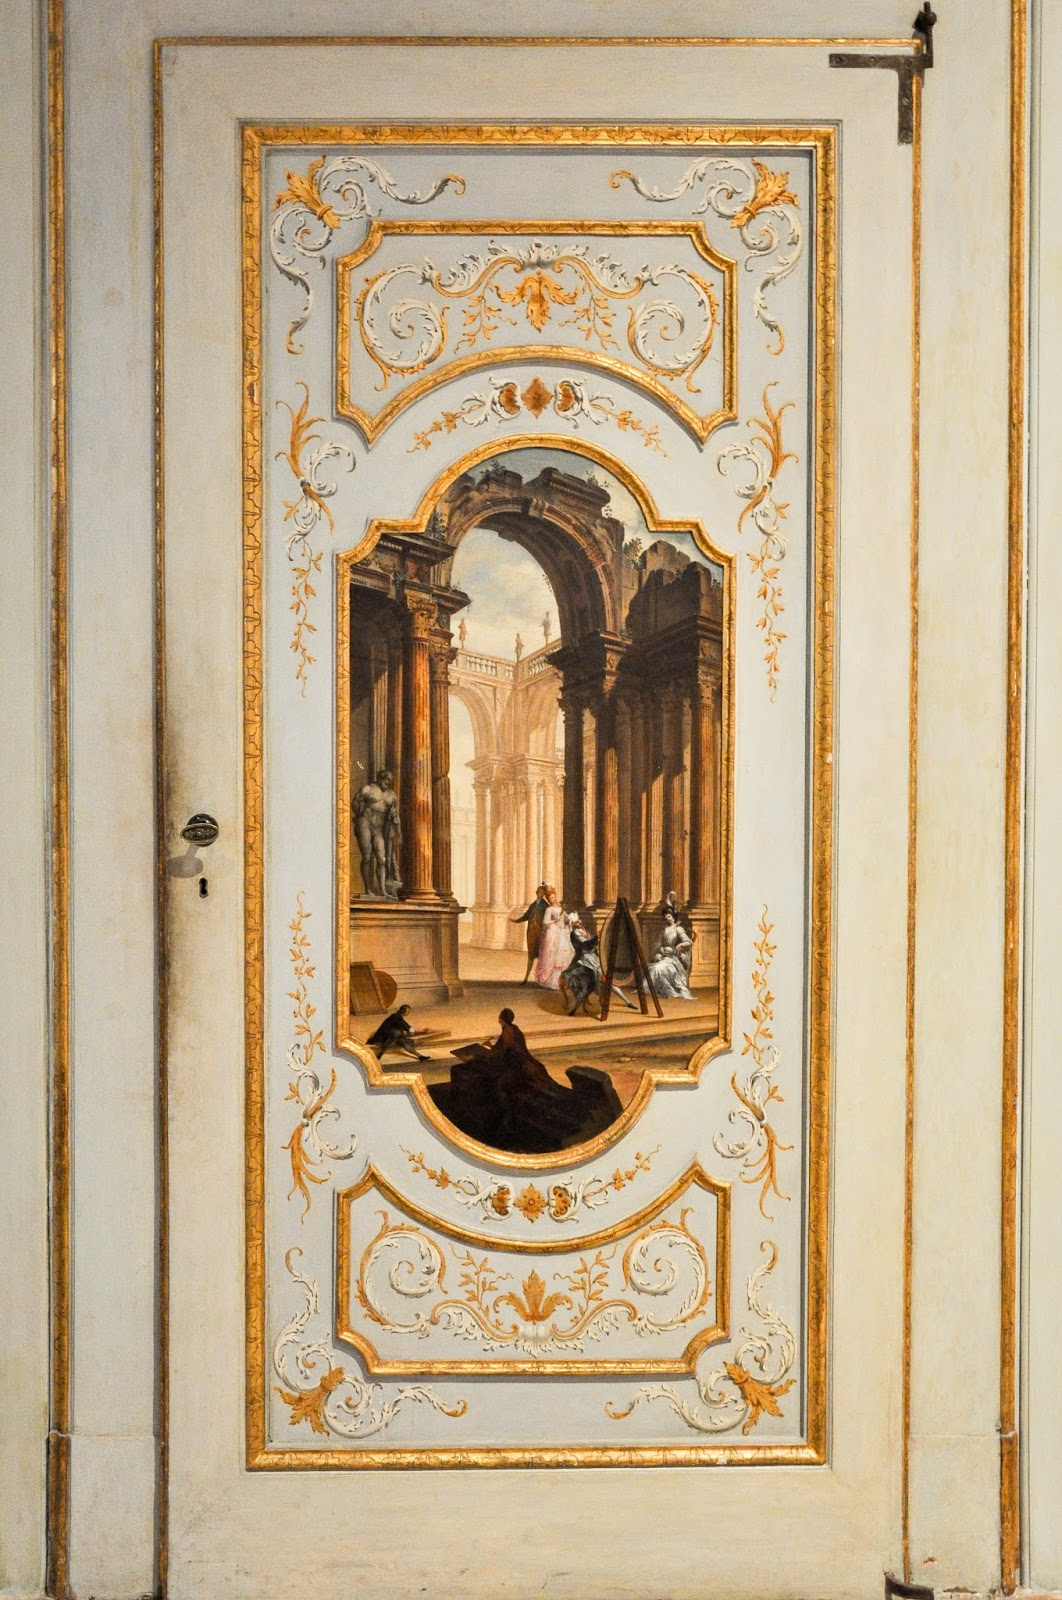 A painted door in Gallerie dell'Accademia in Venice